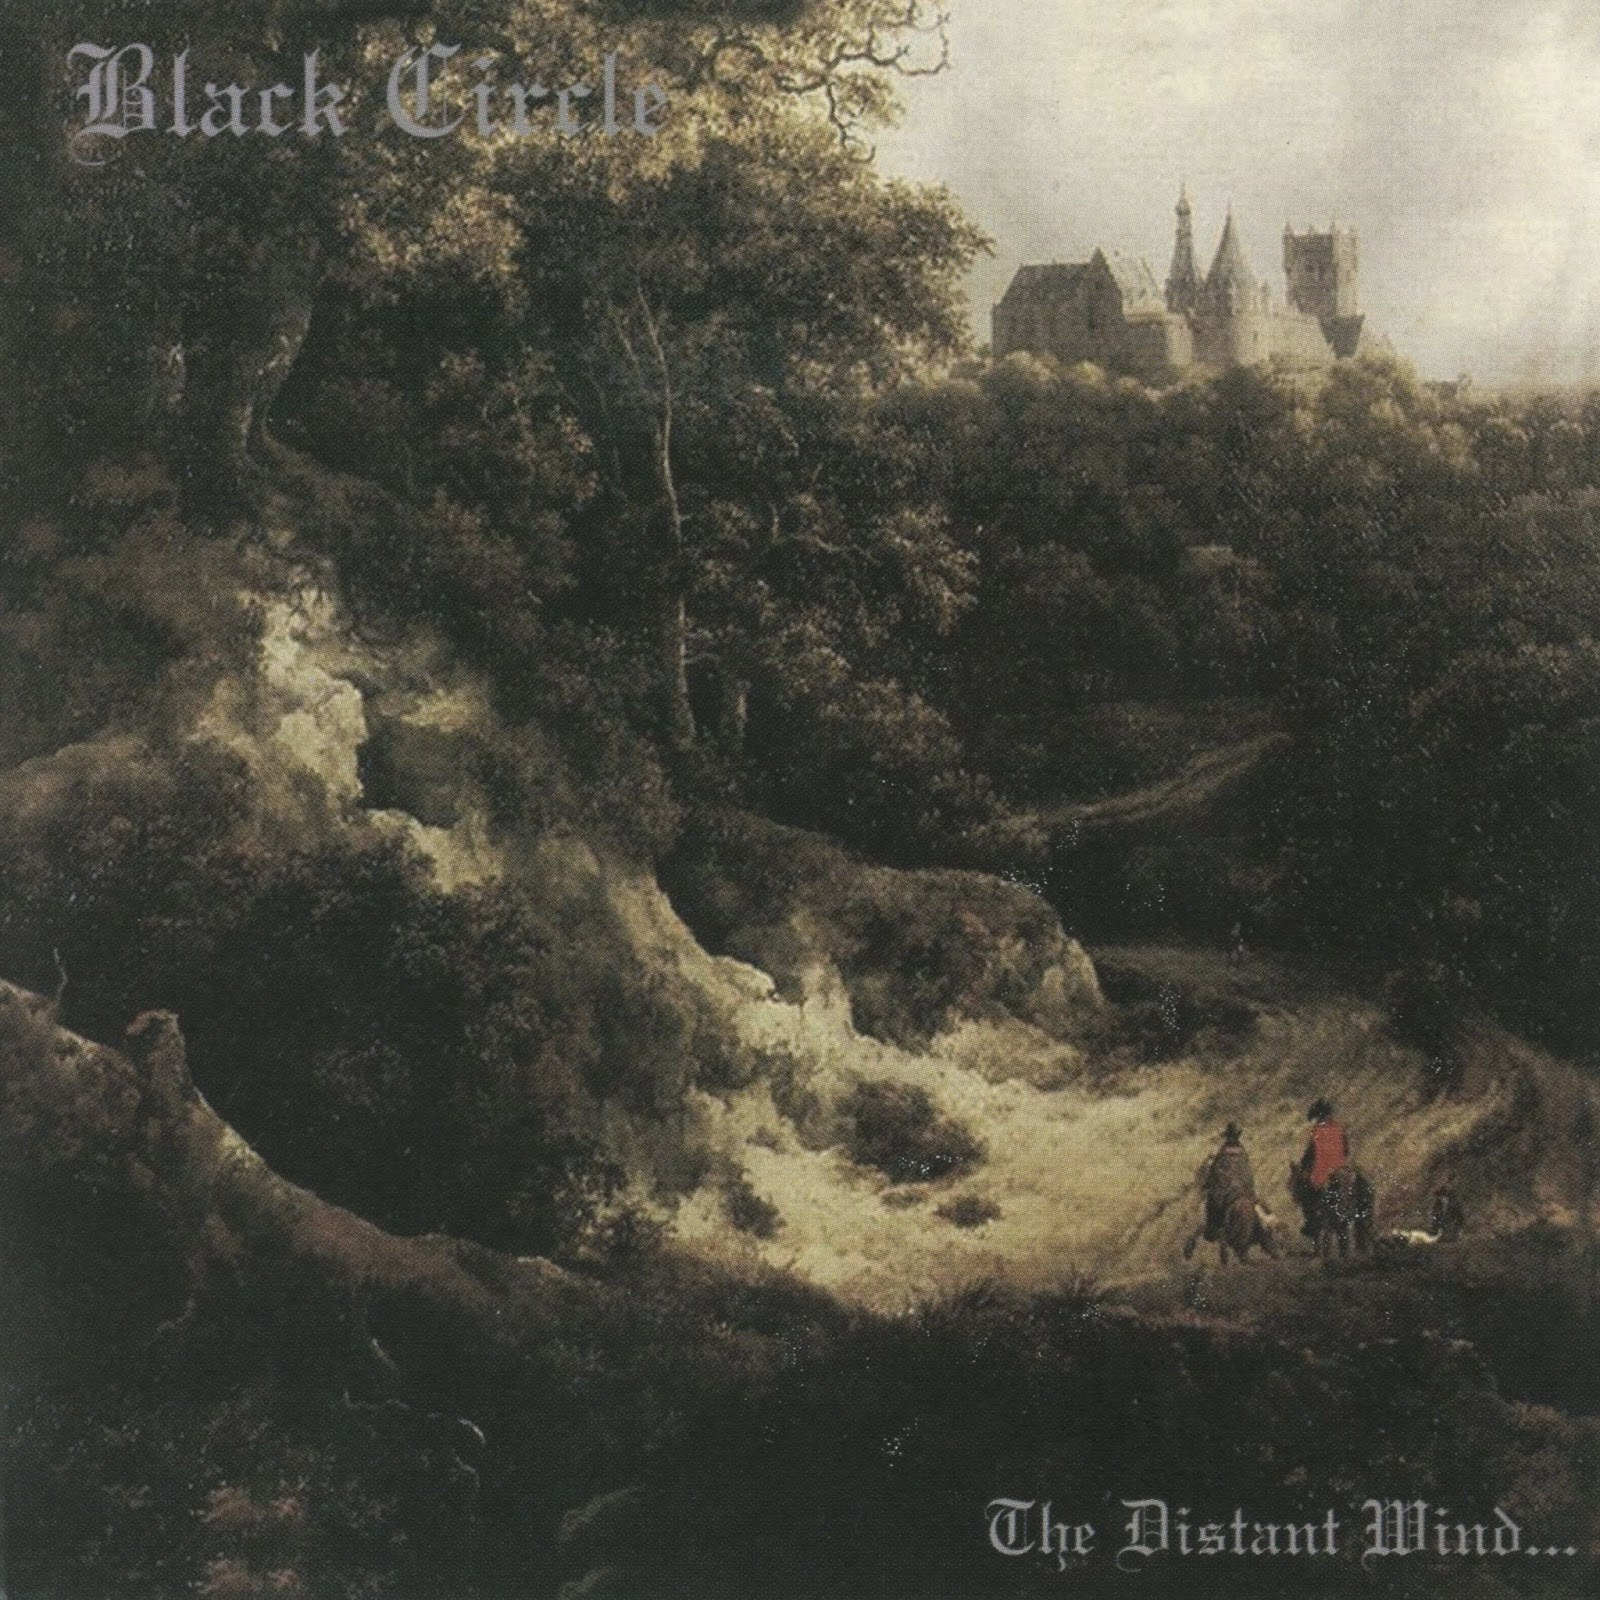 Review for Black Circle - The Distant Wind...